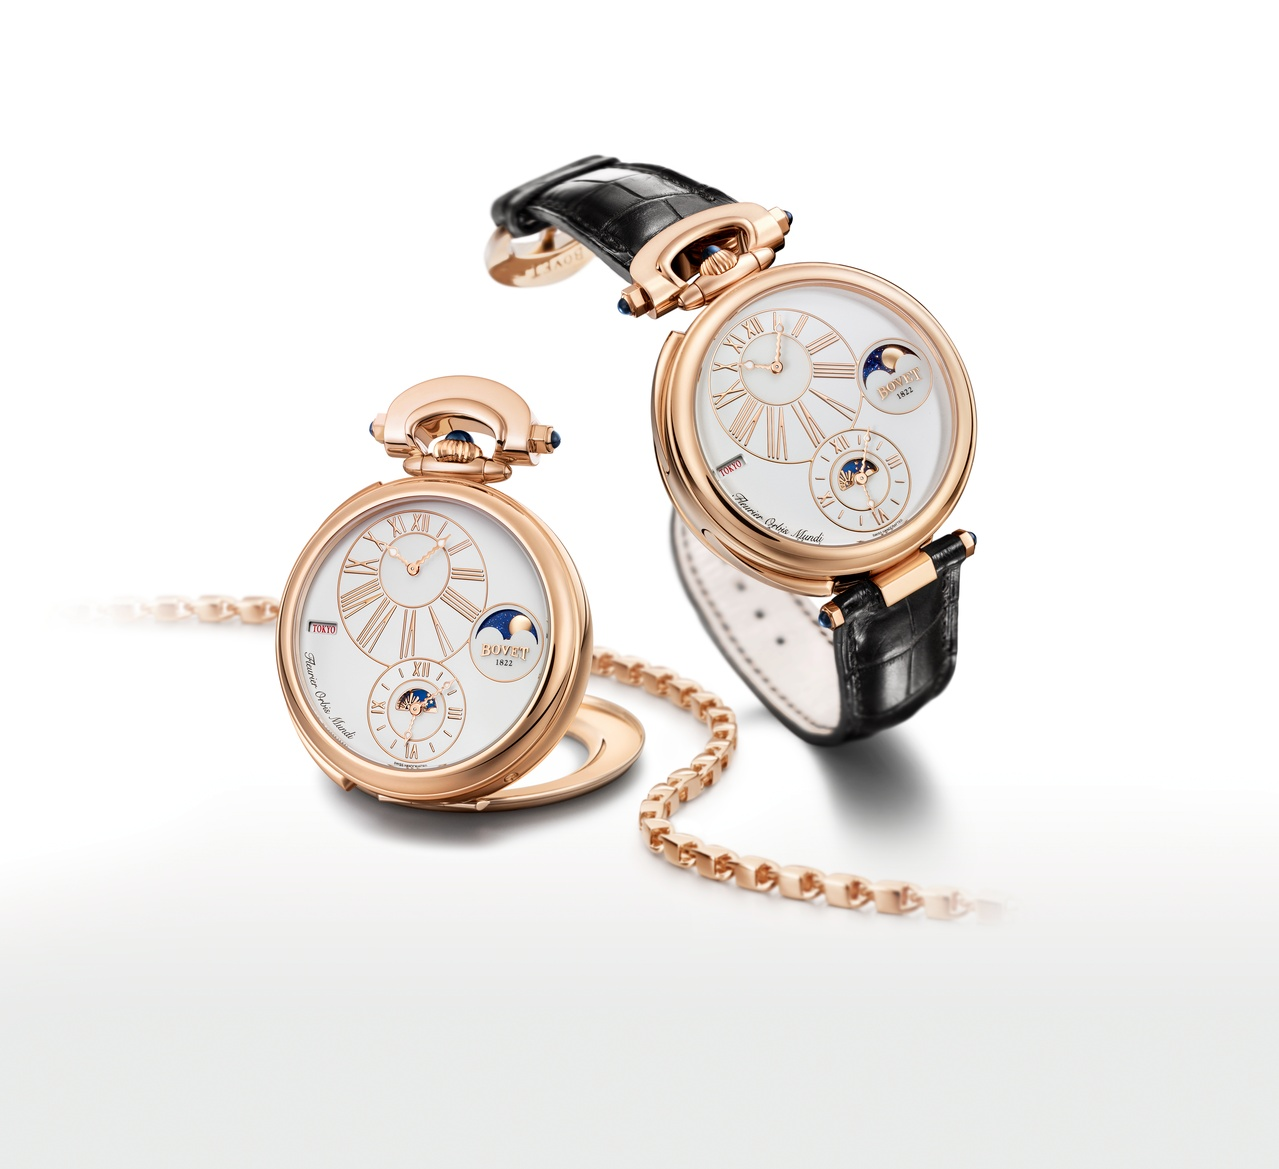 Bovet Watch   Amadeo Fleurier Complications   Ref. Nr. AFOMP003    Call 312-944-3100  | For Availability